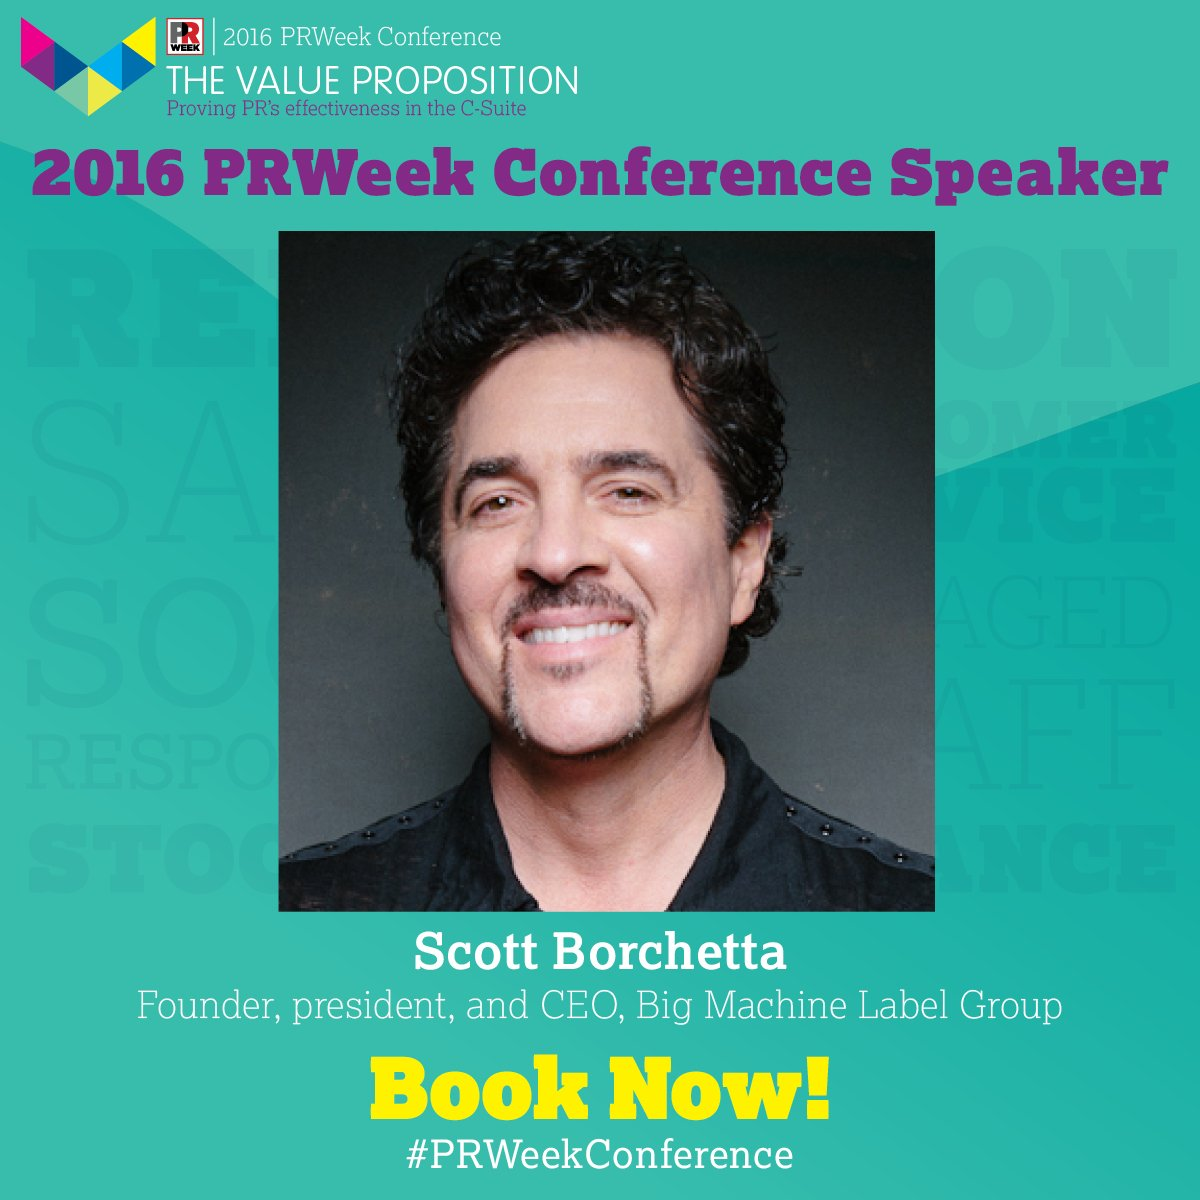 @scottborchetta knows talent. Hear his keys to success at the #PRWeekConference on Oct.13 - https://t.co/0b7KjOgLva https://t.co/pbLuQZDnQc